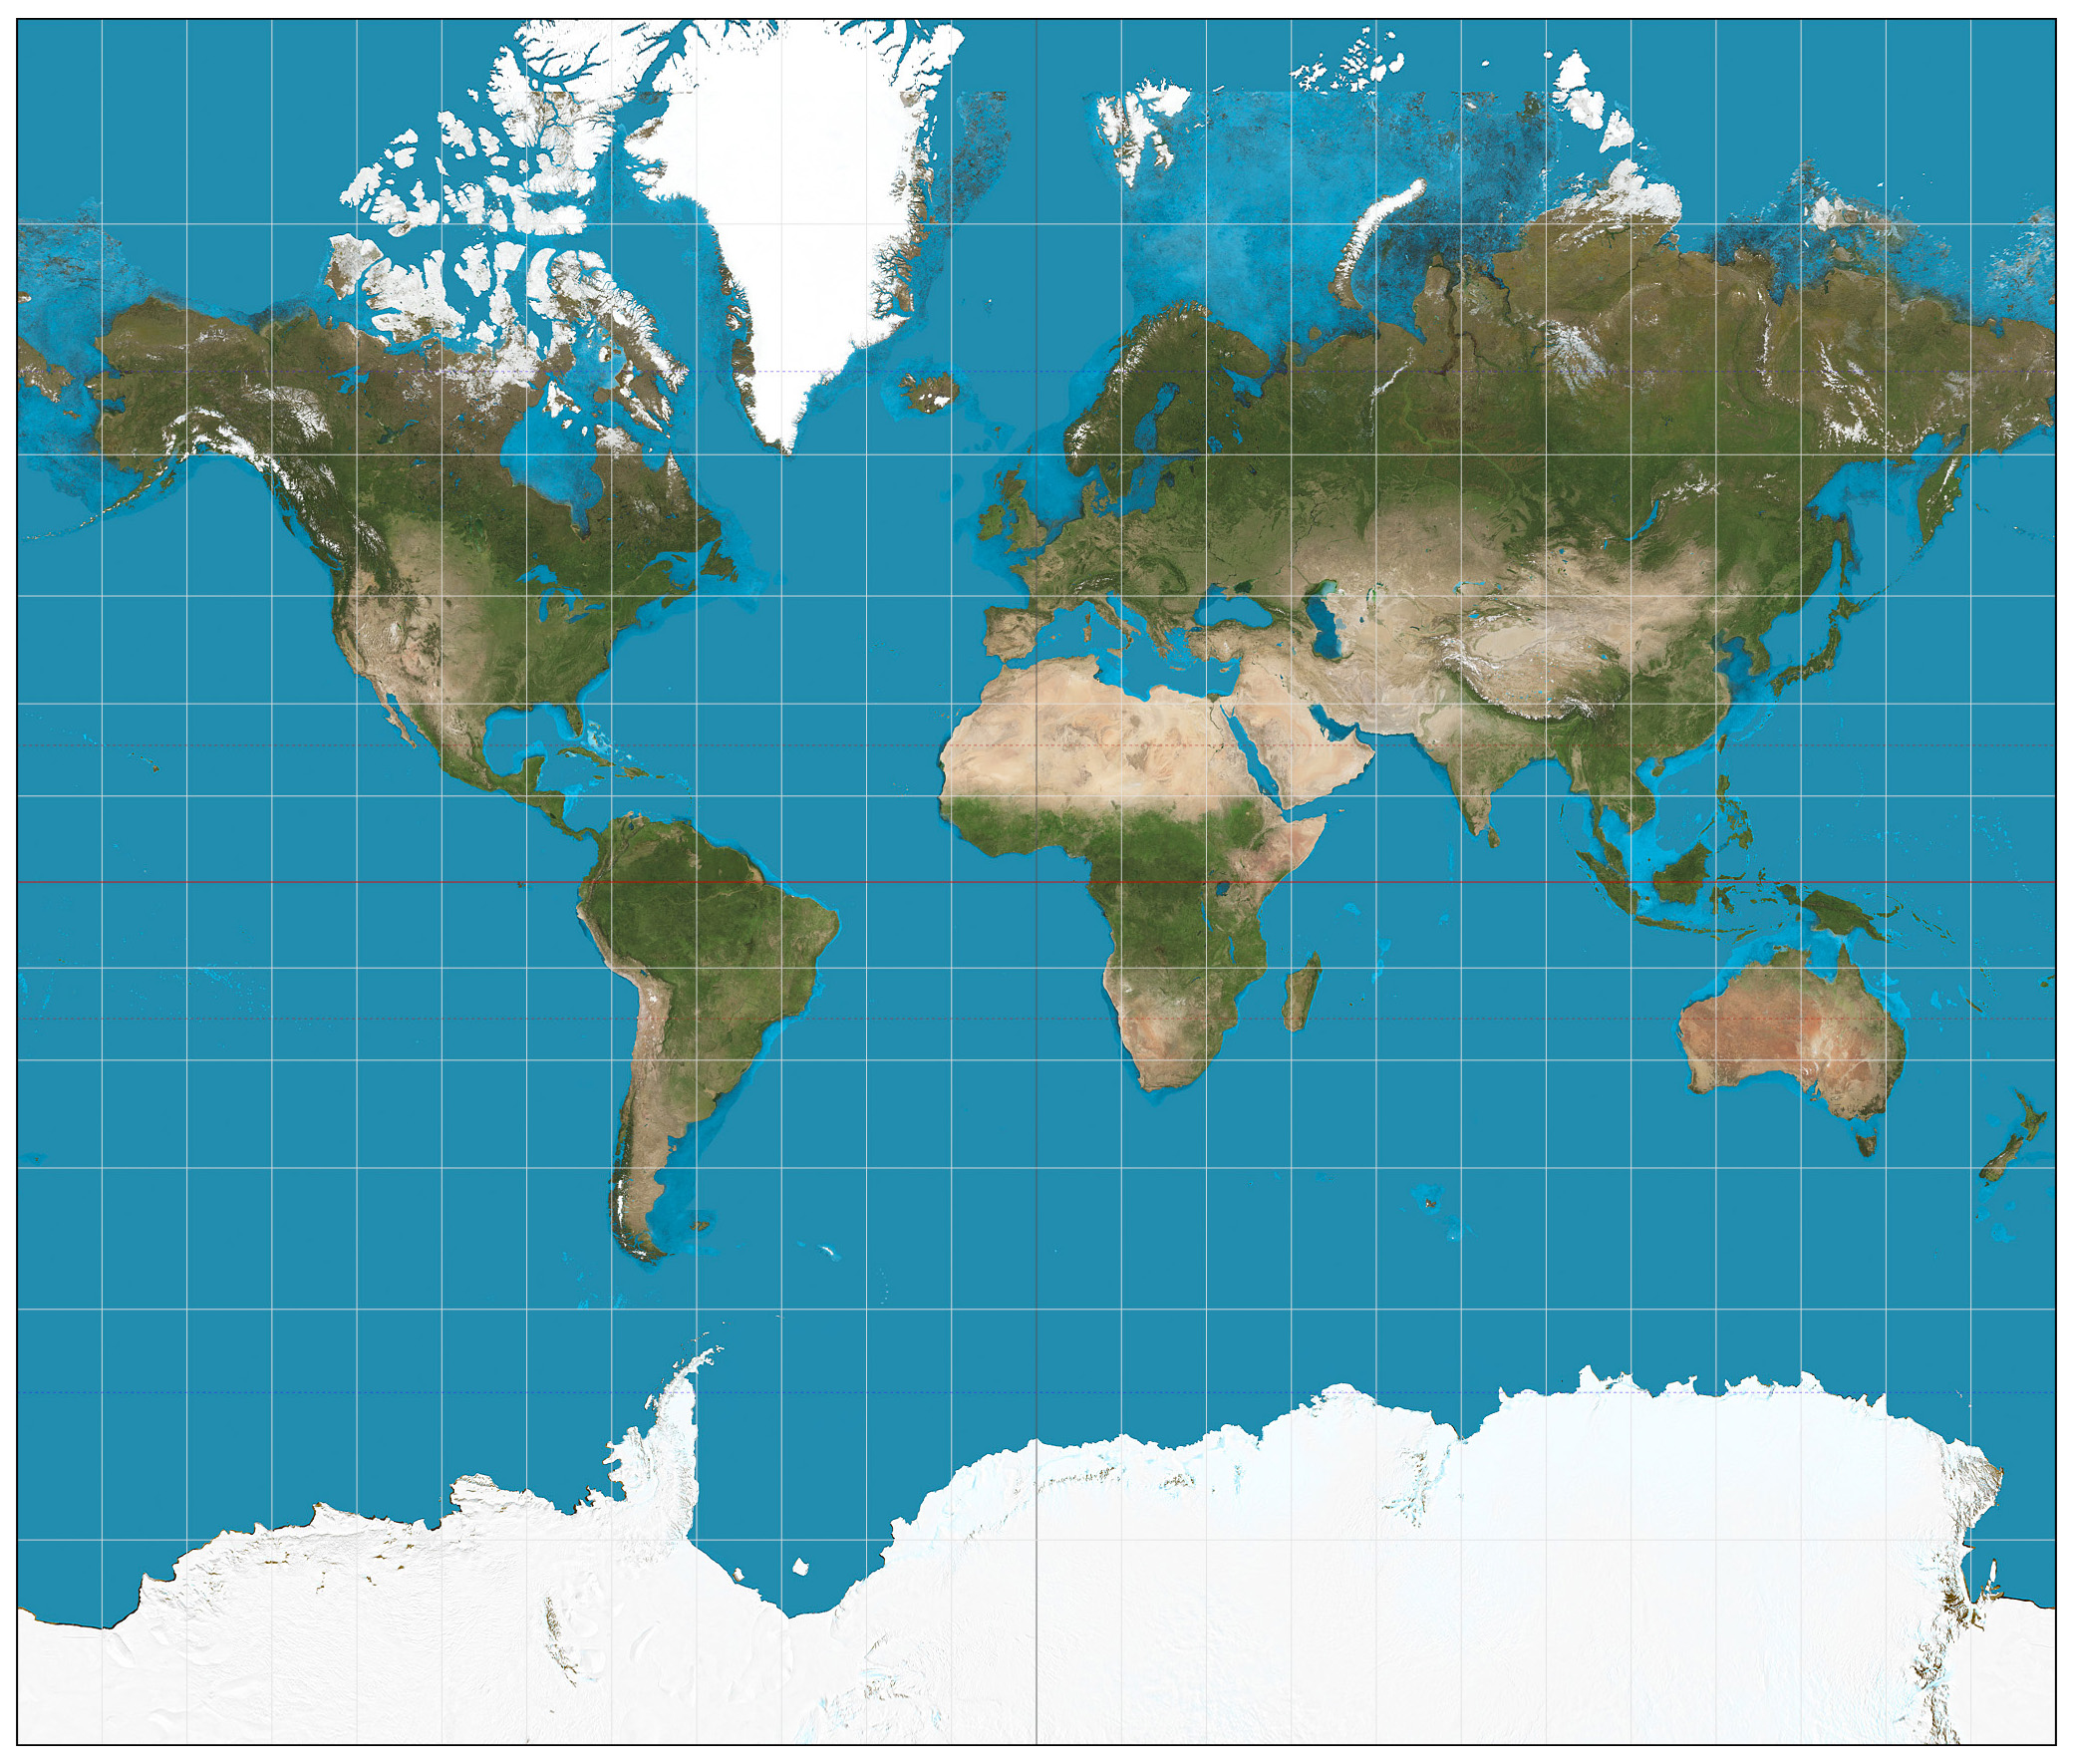 Sattelite Map Of World.Satellite Map Of The World World Mapsland Maps Of The World